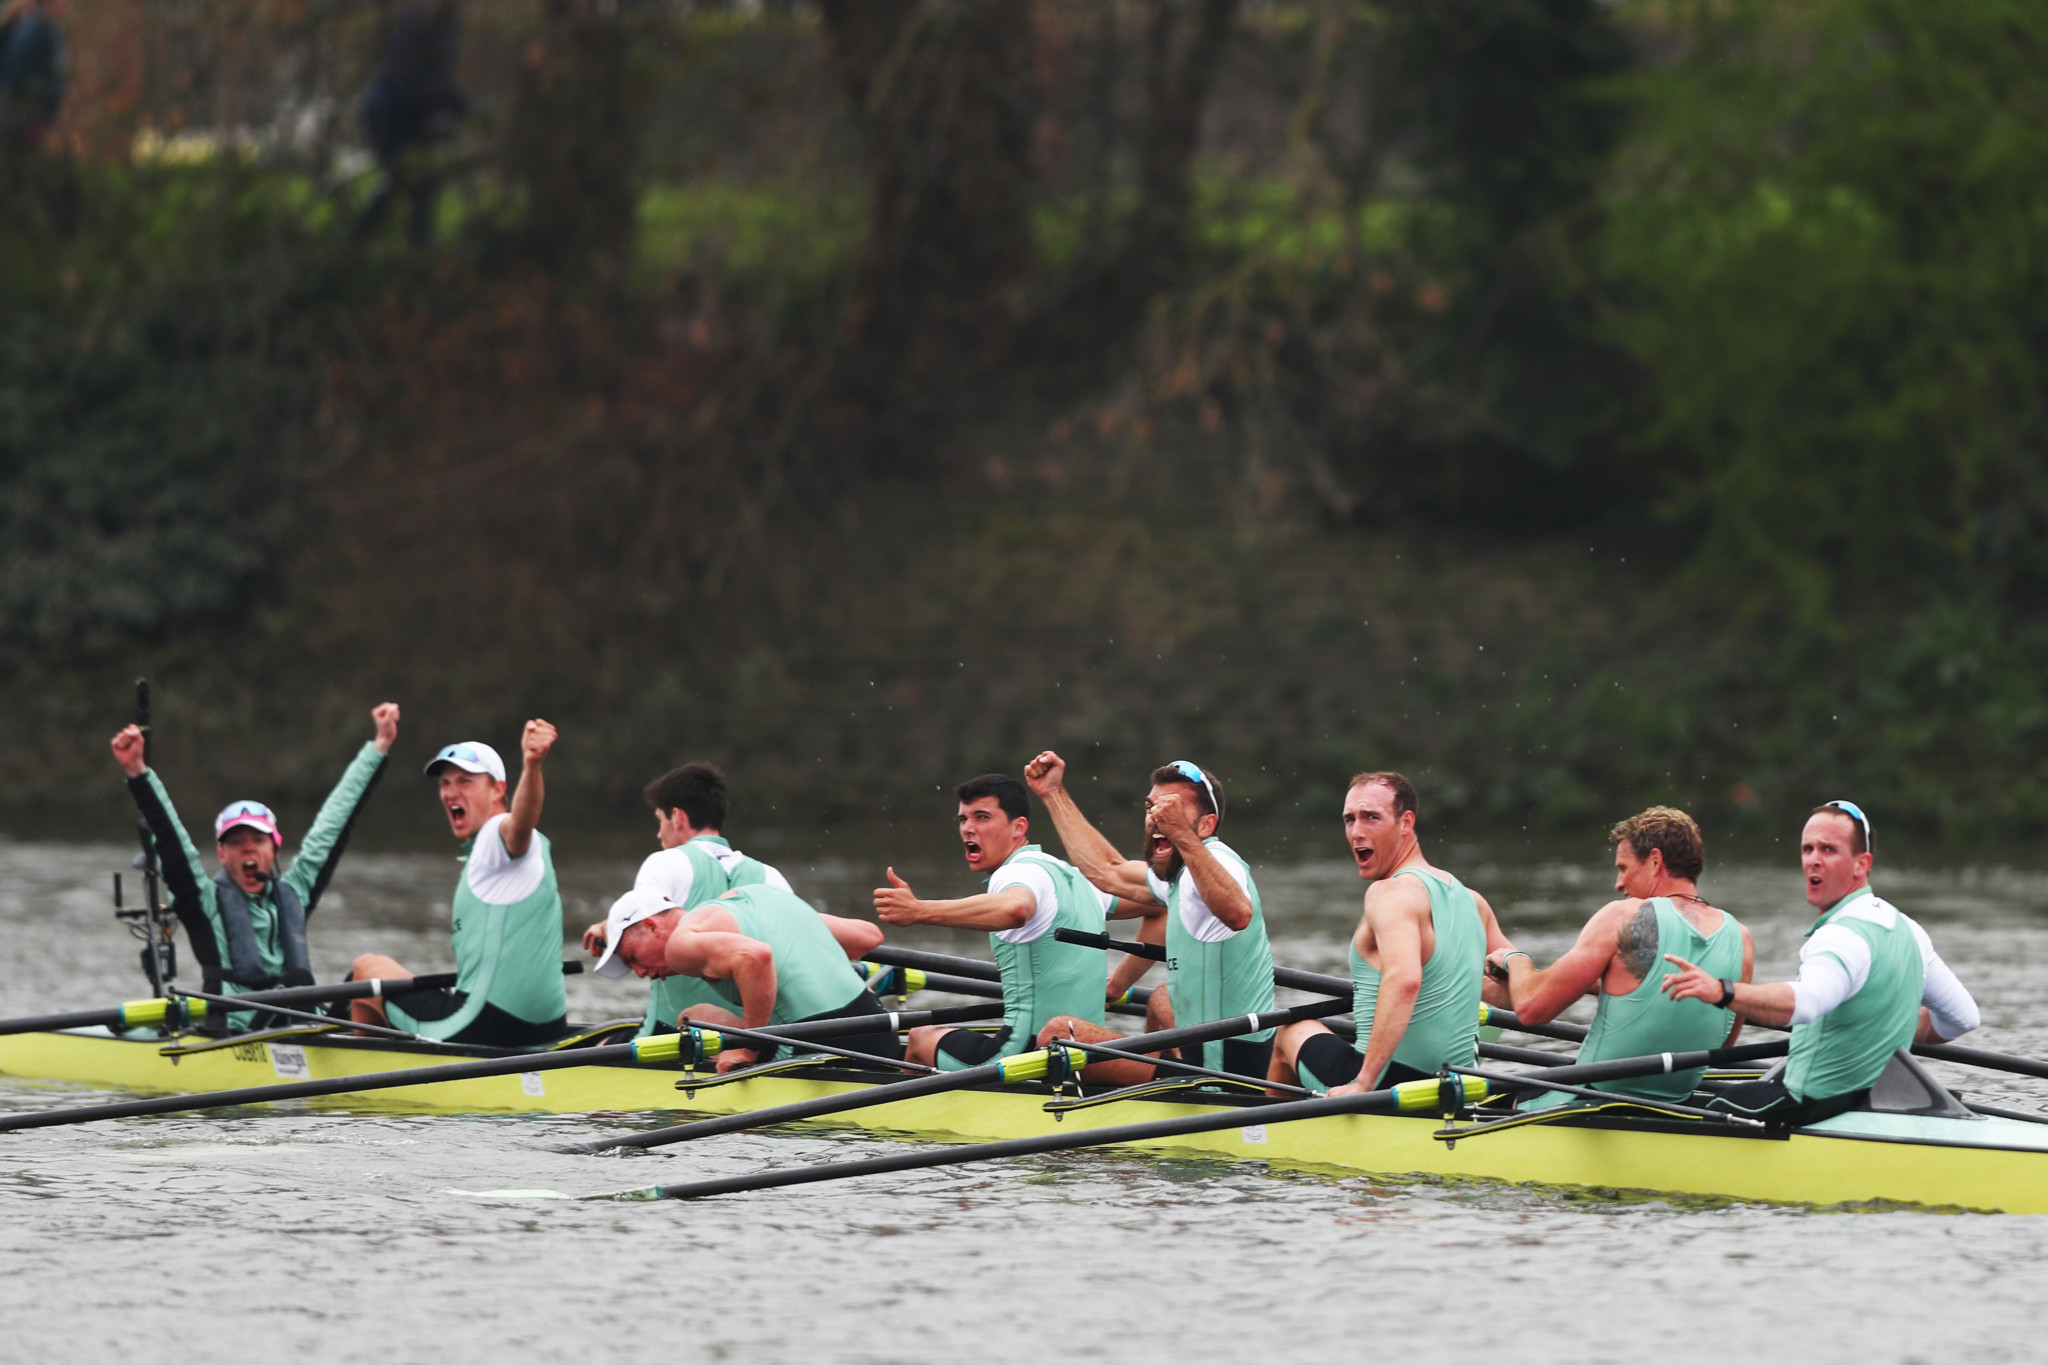 Last year, Cambridge won both the men's and women's events at the 165th Boat Race ©Getty Images